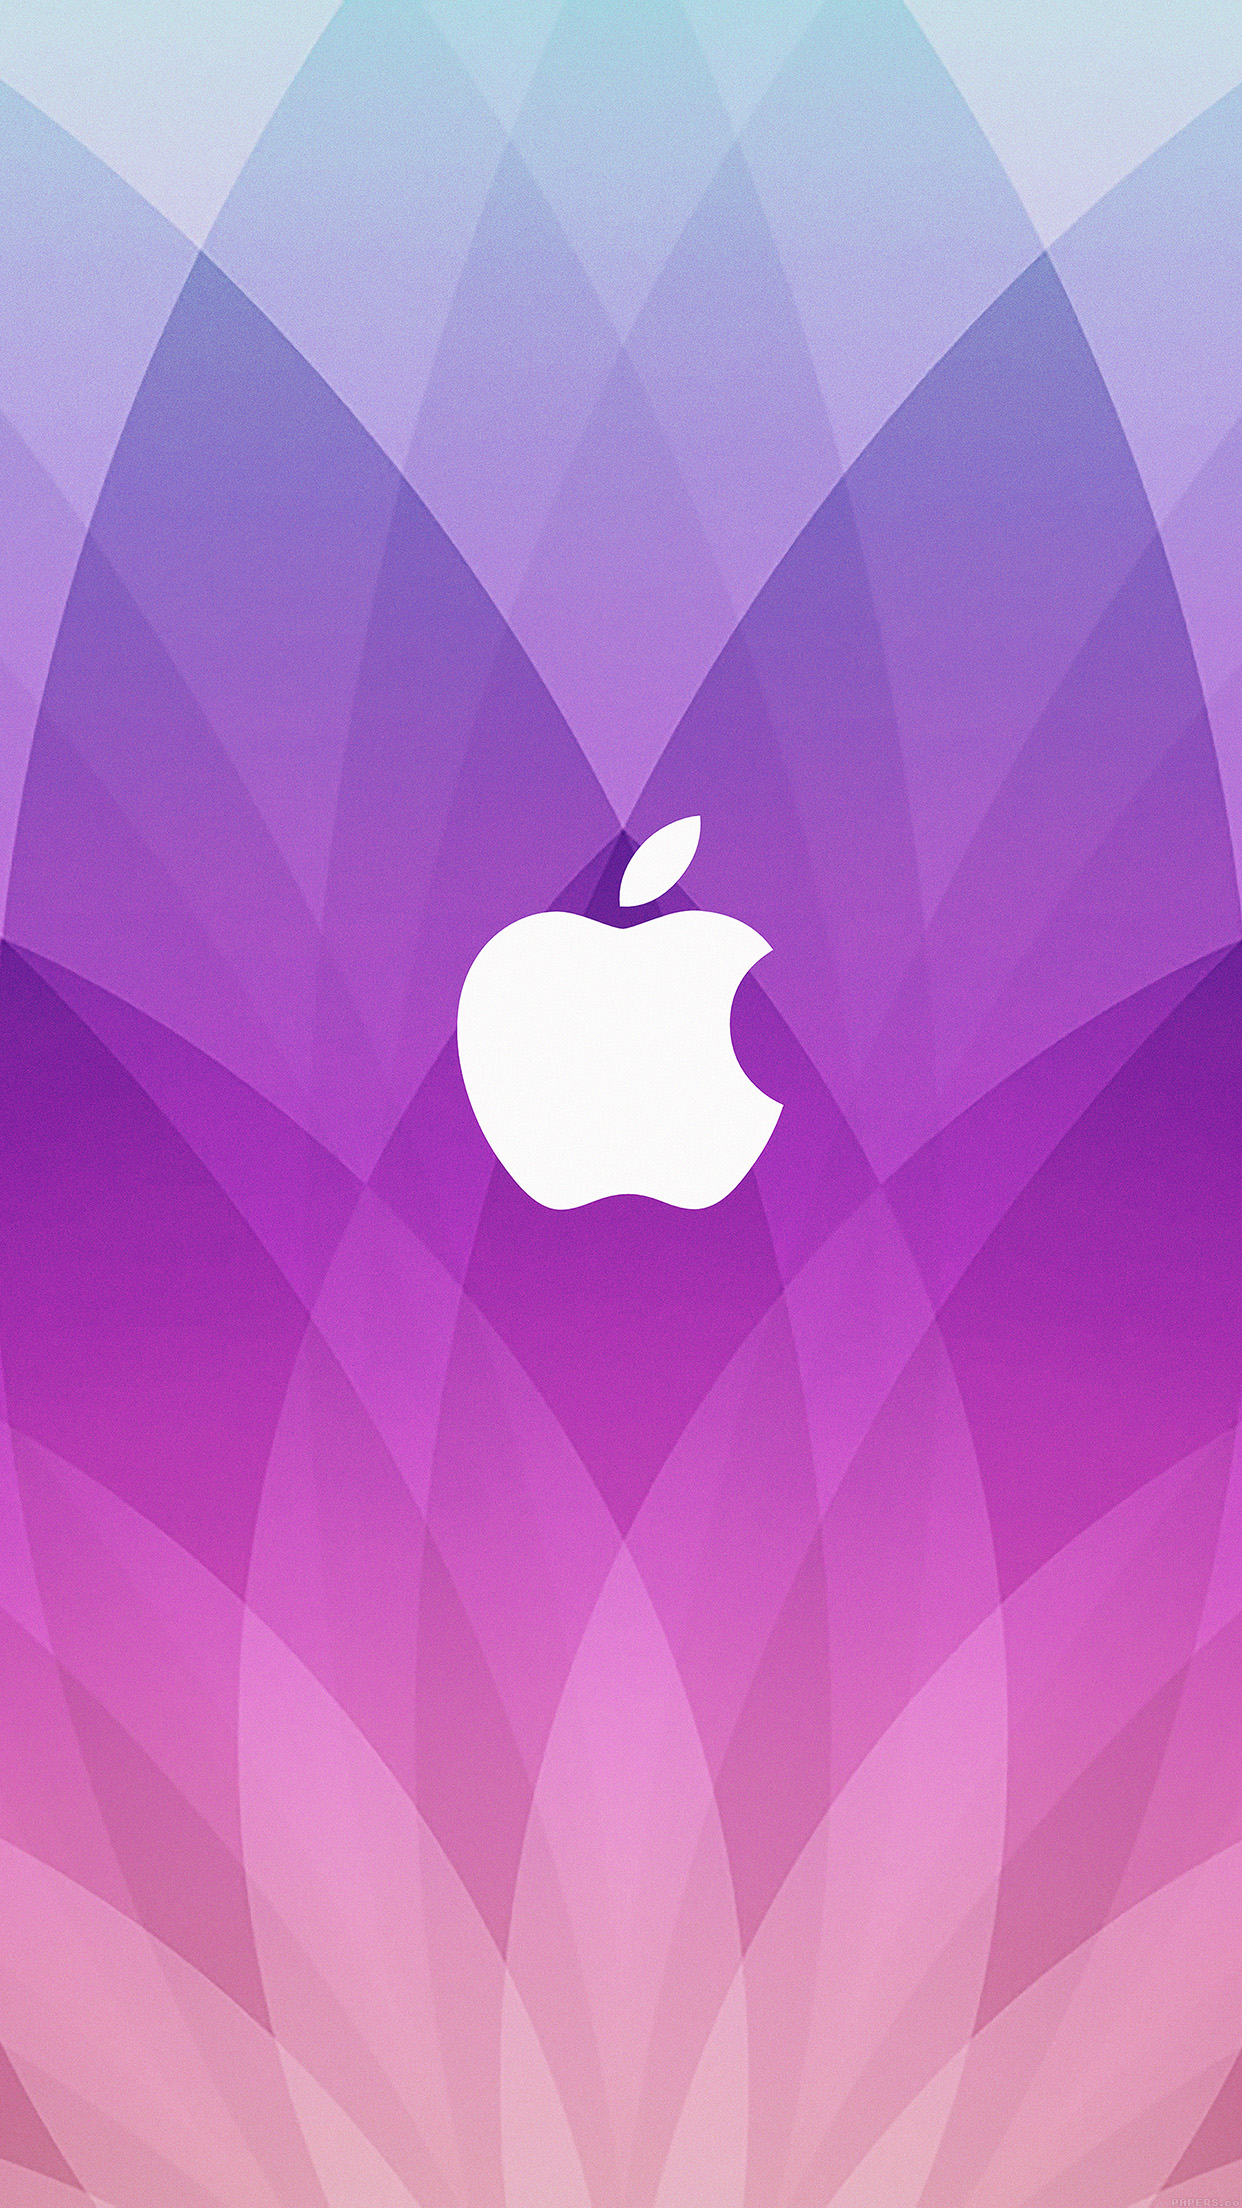 Wallpapers of the week: Apple logo